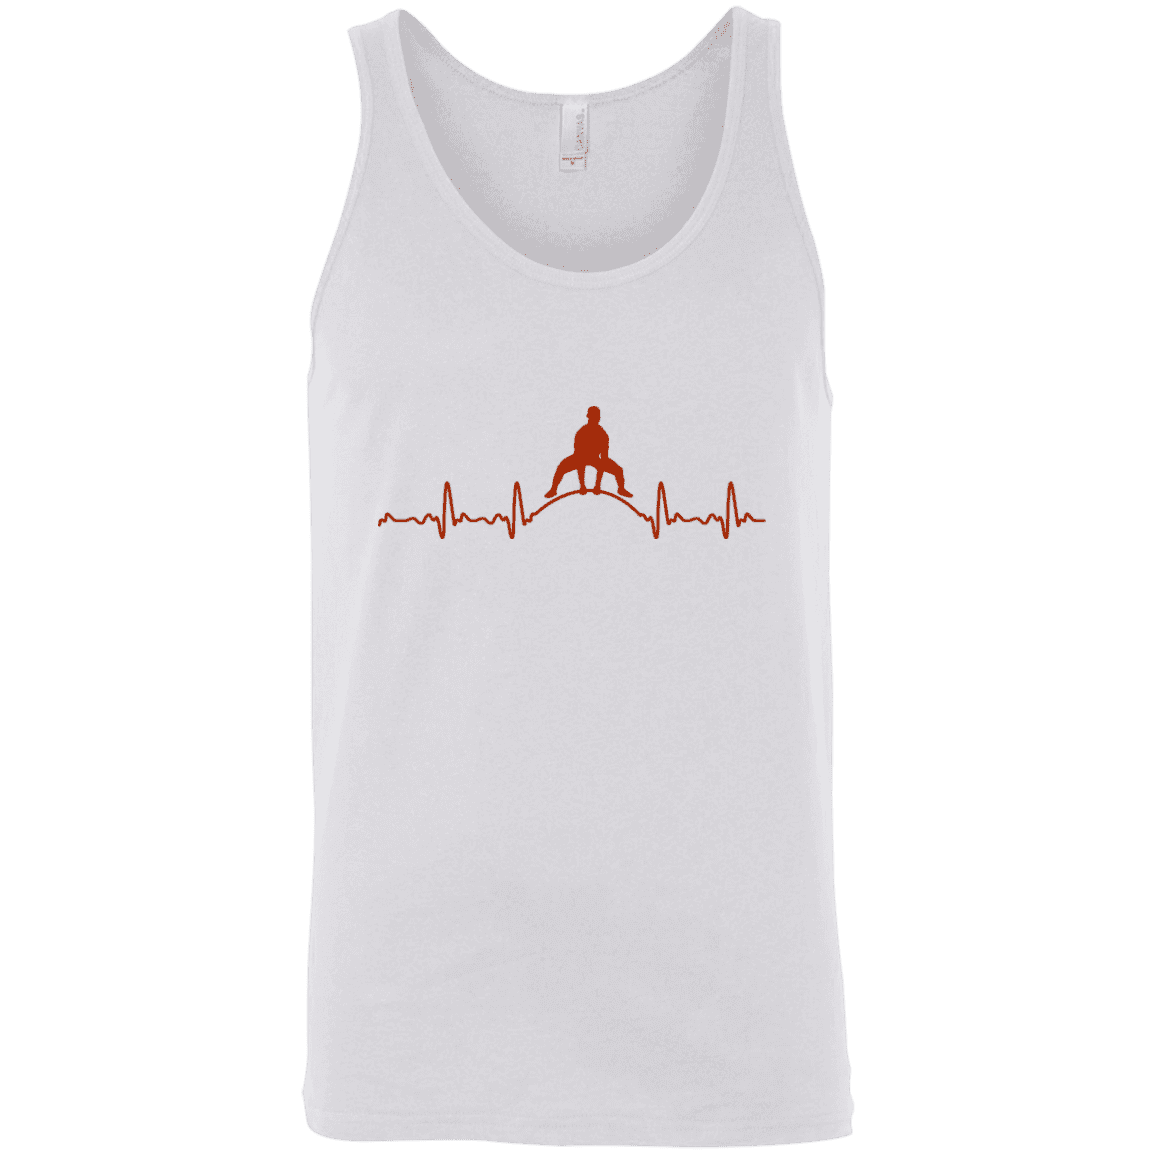 T-Shirts White / X-Small Heartbeat Tank Top